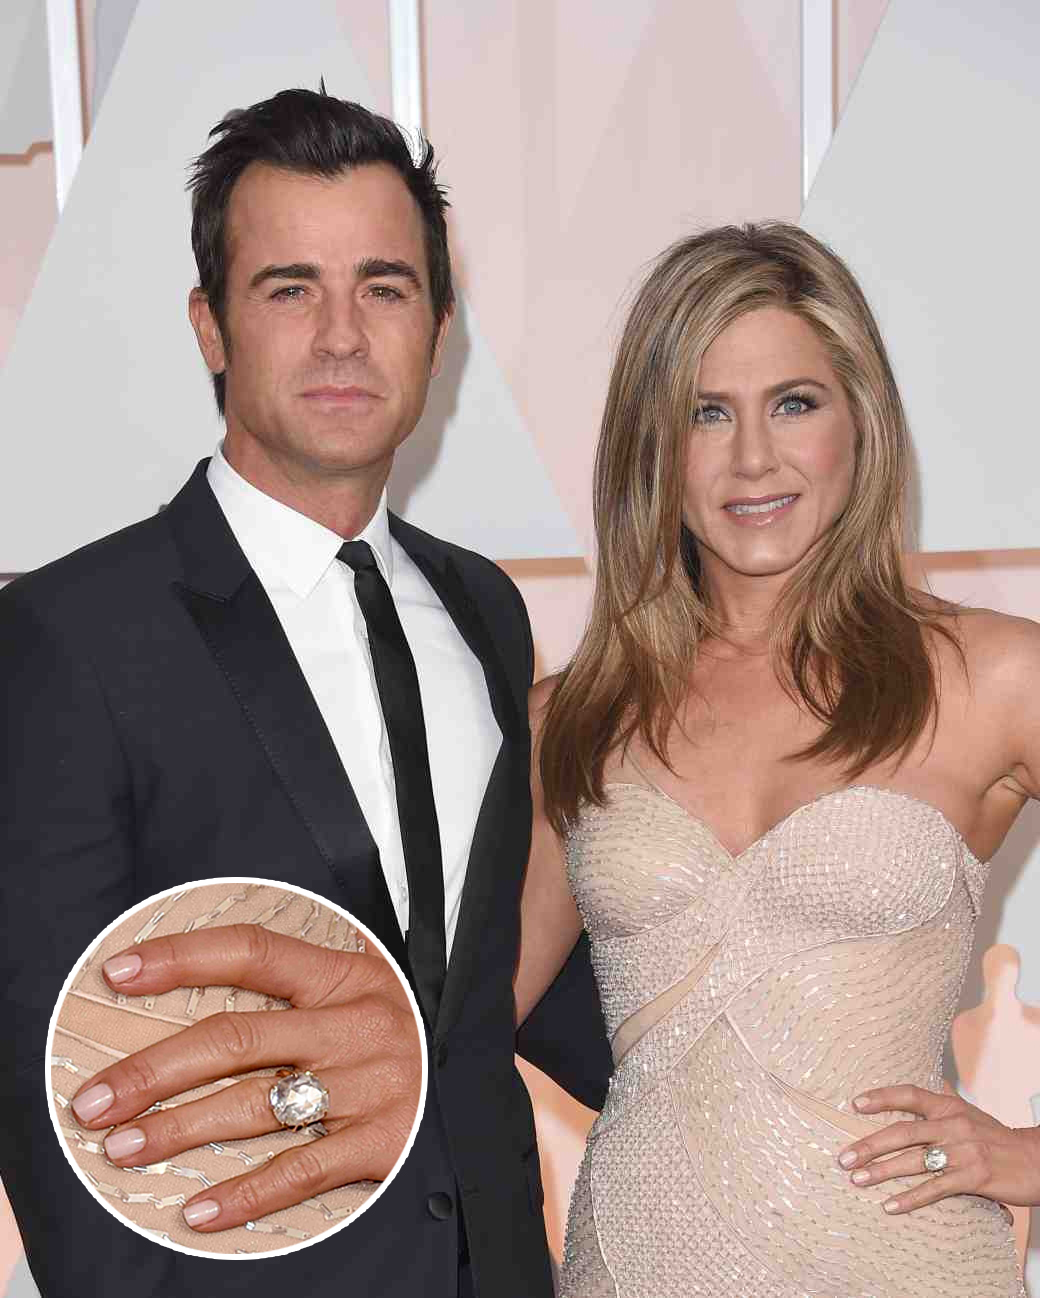 jennifer-aniston-ring-inset-0316.jpg